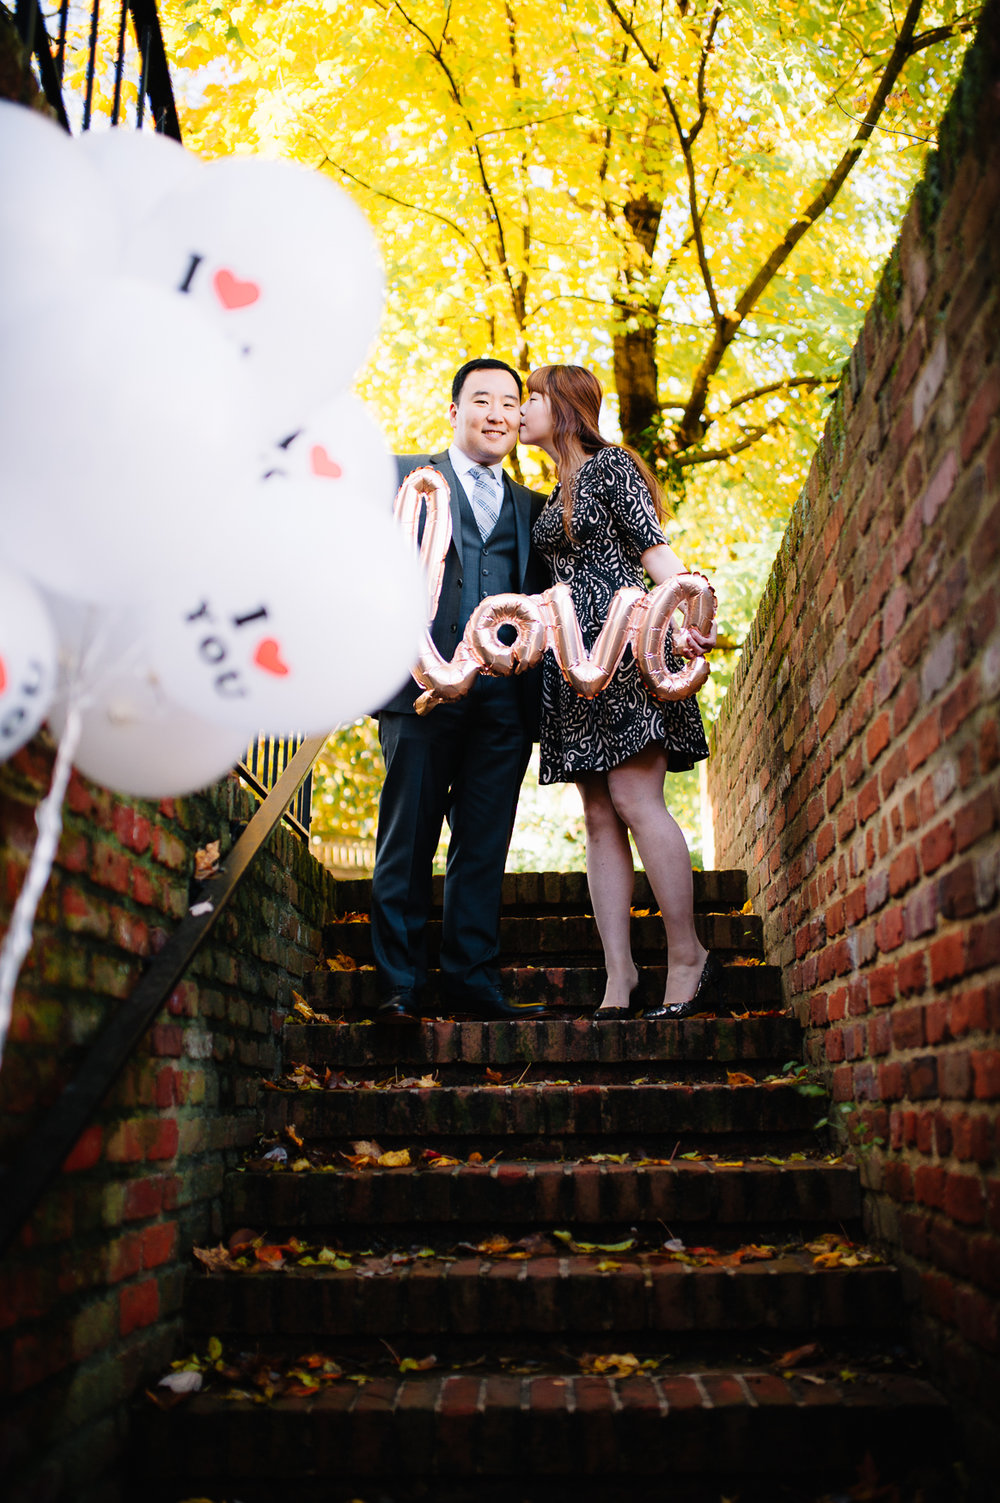 engagement_downtownfredericksburg_Fall_virginiaweddingphotographer_youseephotography_KatieKevin (5).jpg